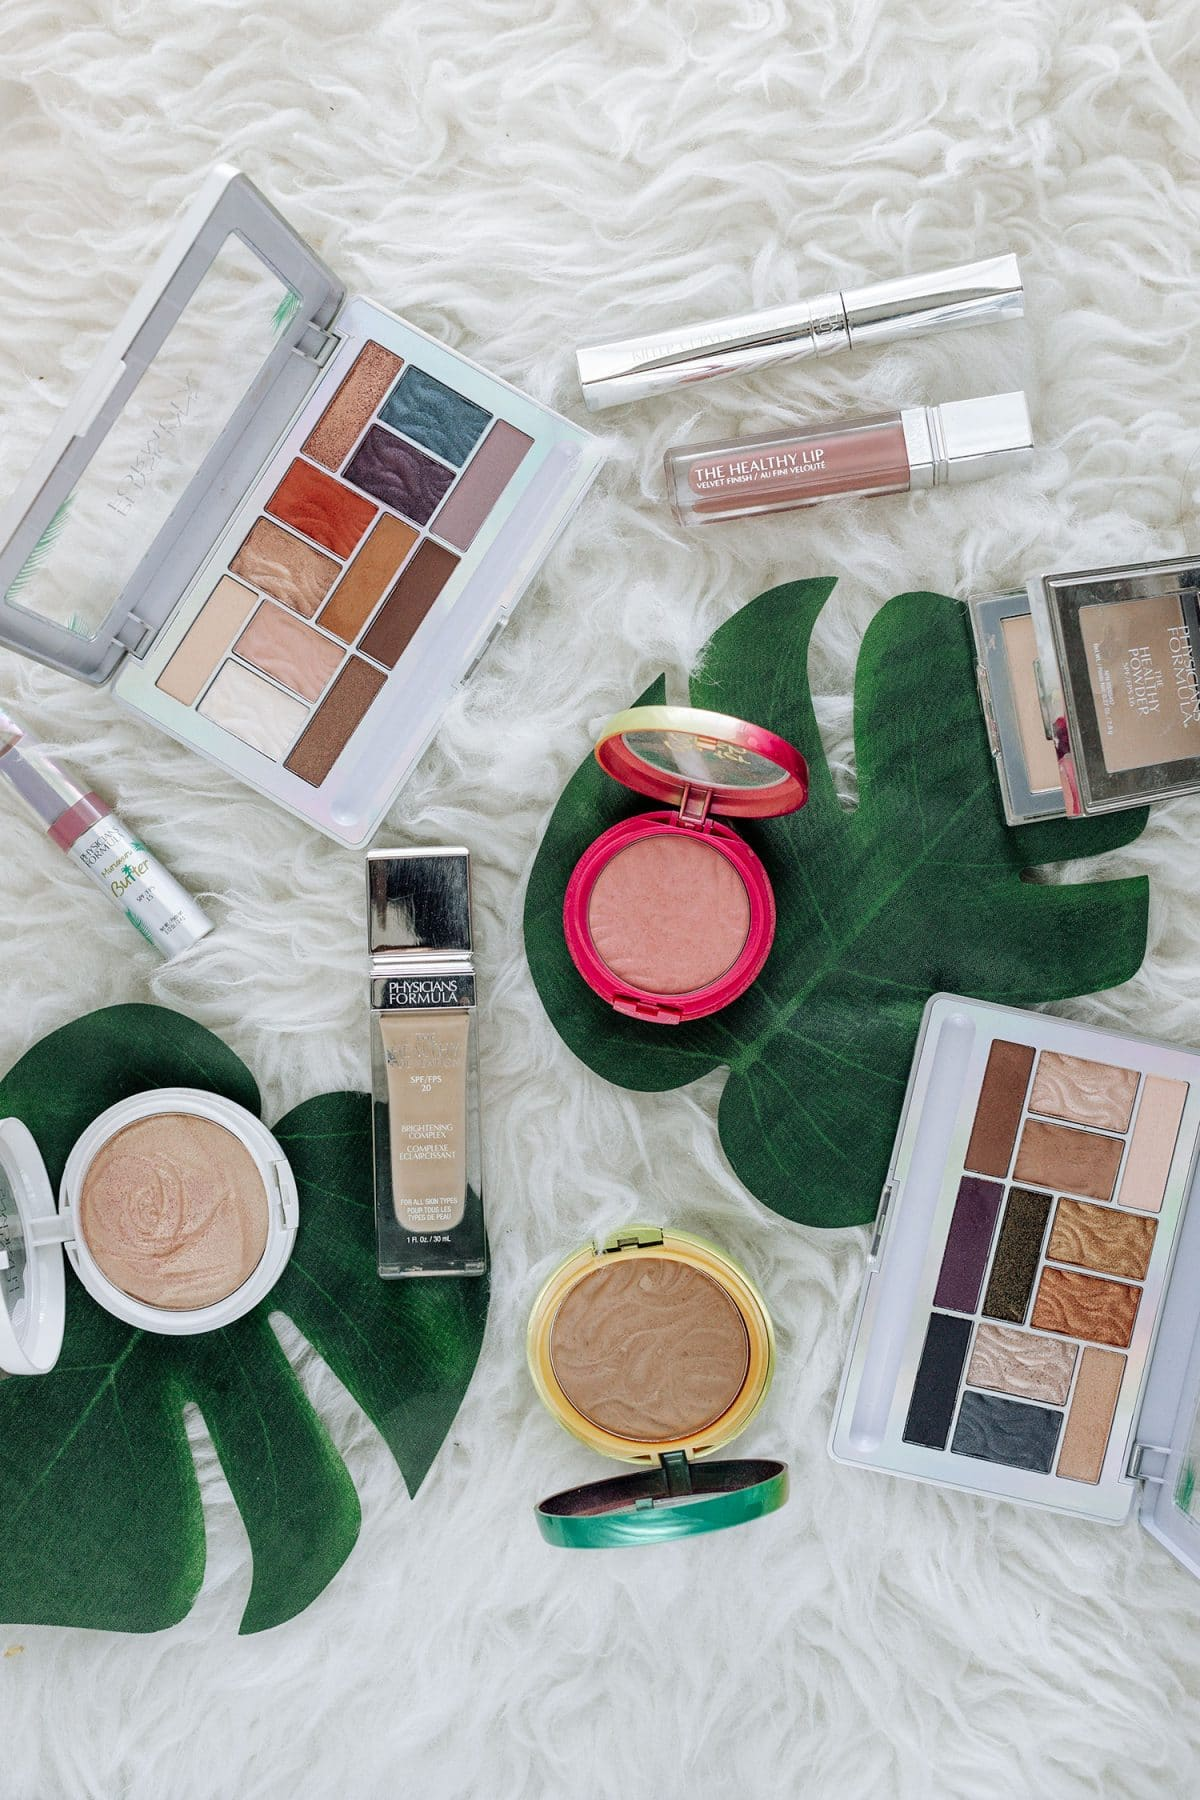 Houston beauty blogger Meg O. shares the best Physicians Formula products - butter bronzer, butter eyeshadow palettes, the healthy lip, the healthy foundation, butter blush, rose glow